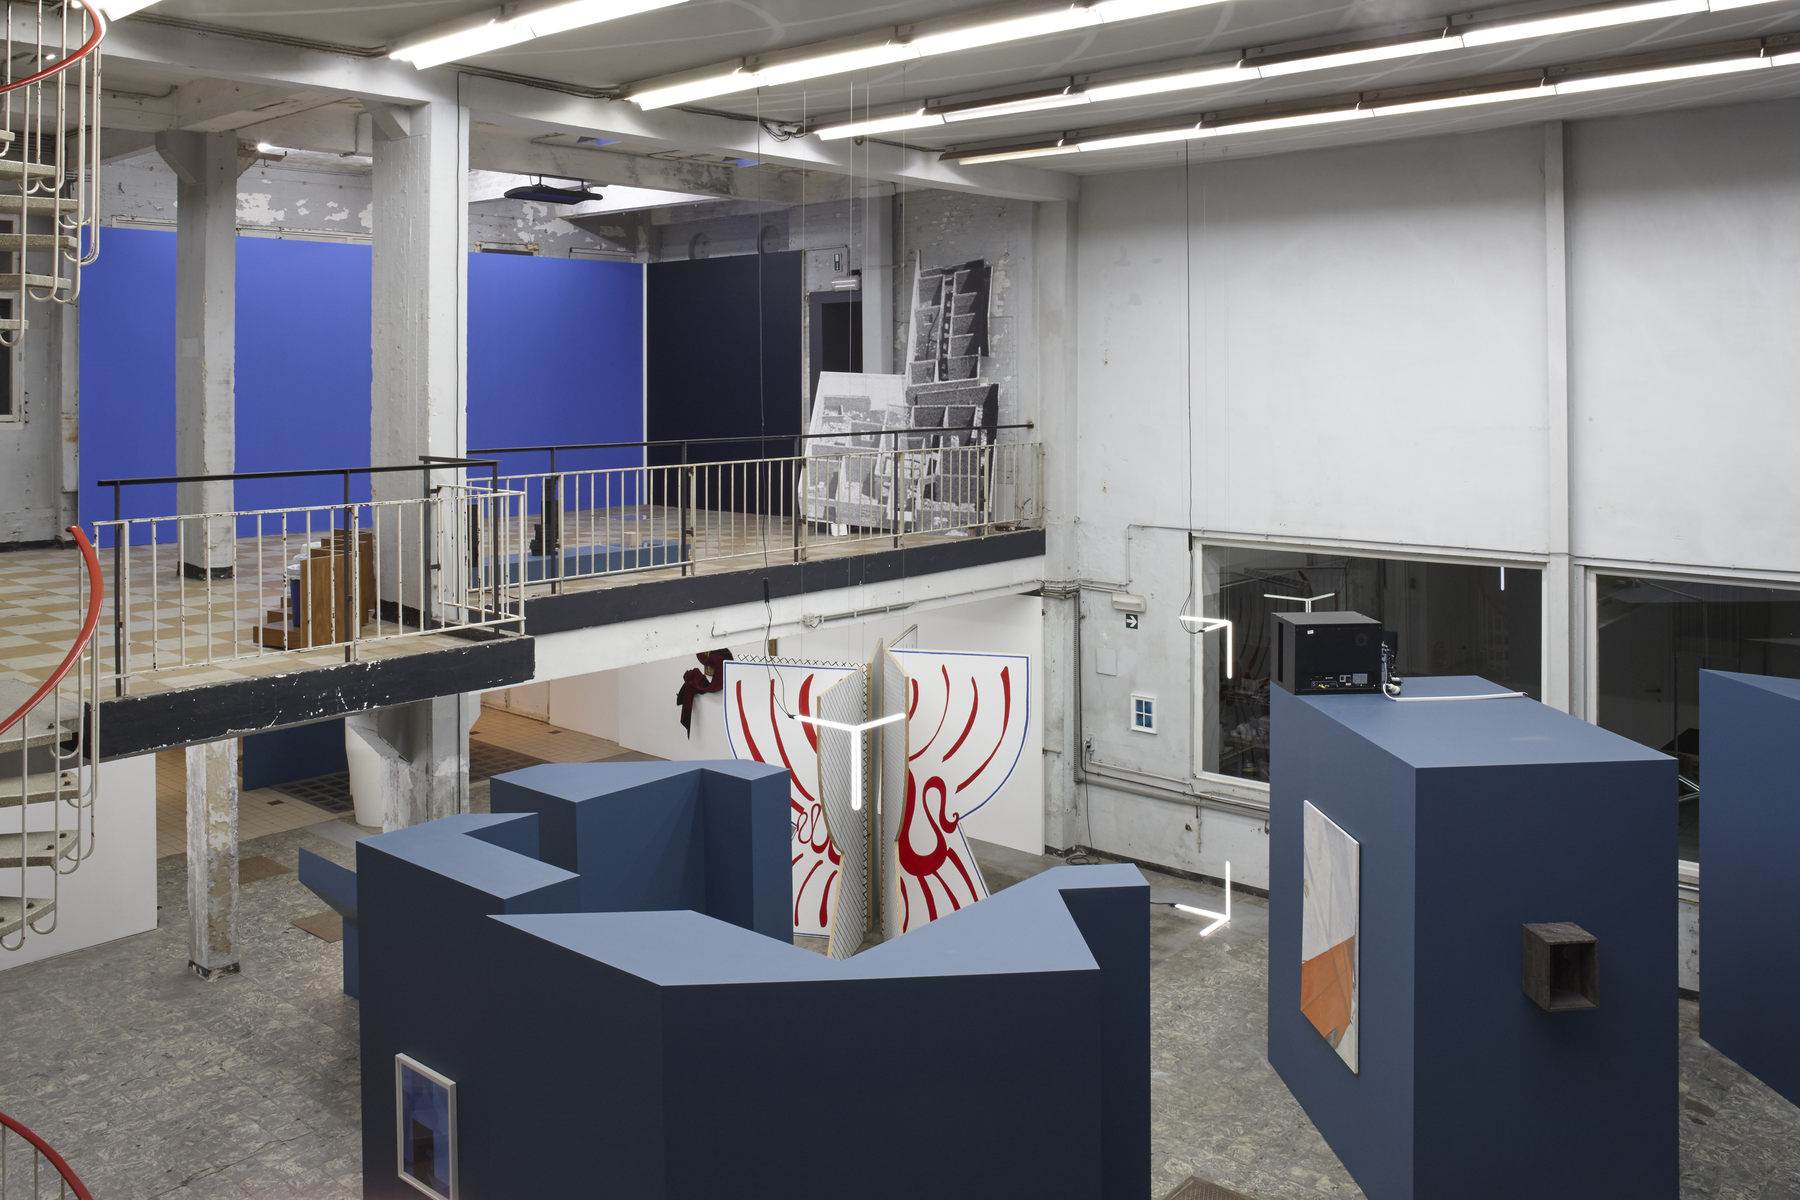 'The Corner Show', installation view, Extra City Kunsthal, 2015 © Jan Kempenaers466